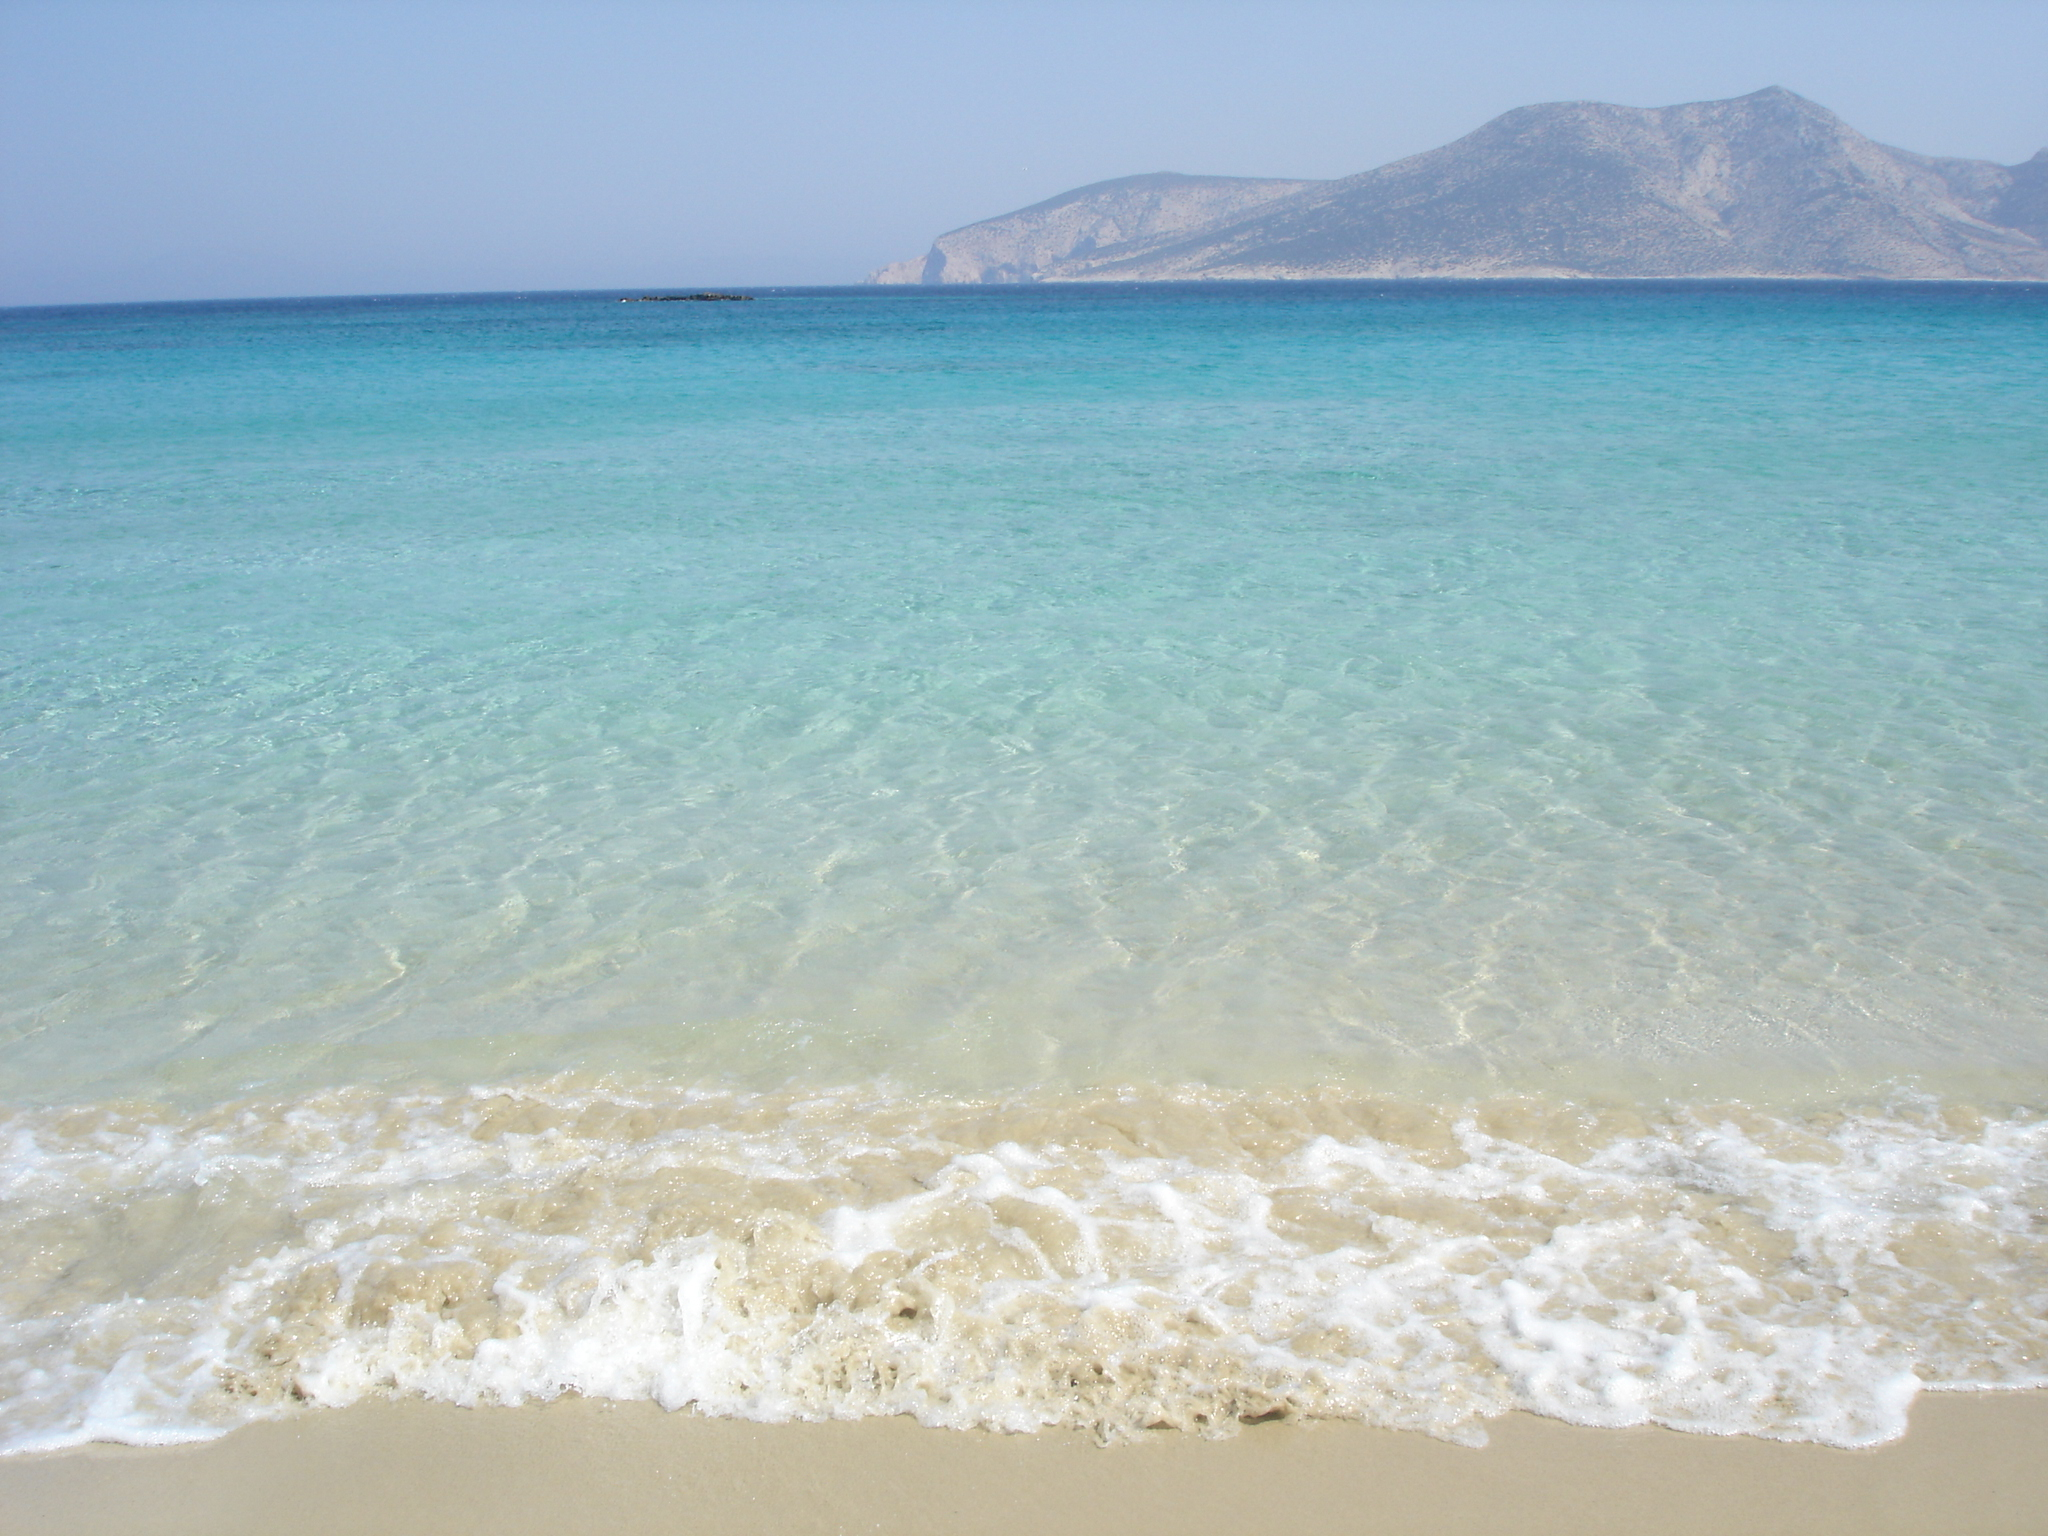 Koufonisi island is just 10kms long and it has beaches like this one in the photo. It is one of the most upcoming islands in Greece in the past 15 years and it is very tough to find a room in the summer, if you don't book at least 6 months in advance.